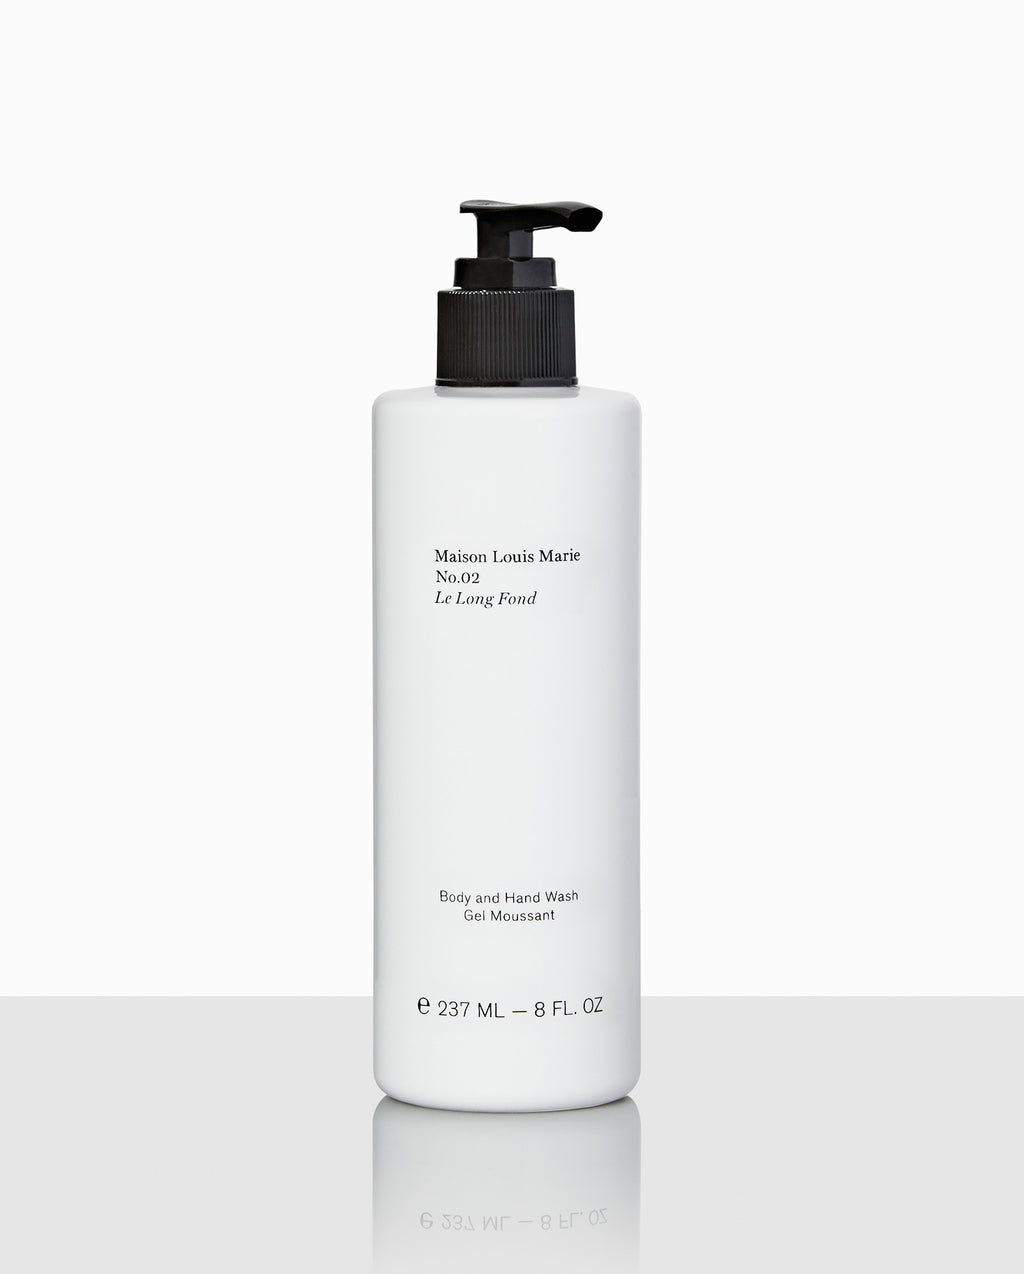 MAISON LOUIS MARIE No.2 Le Long Fond Hand and Body Wash